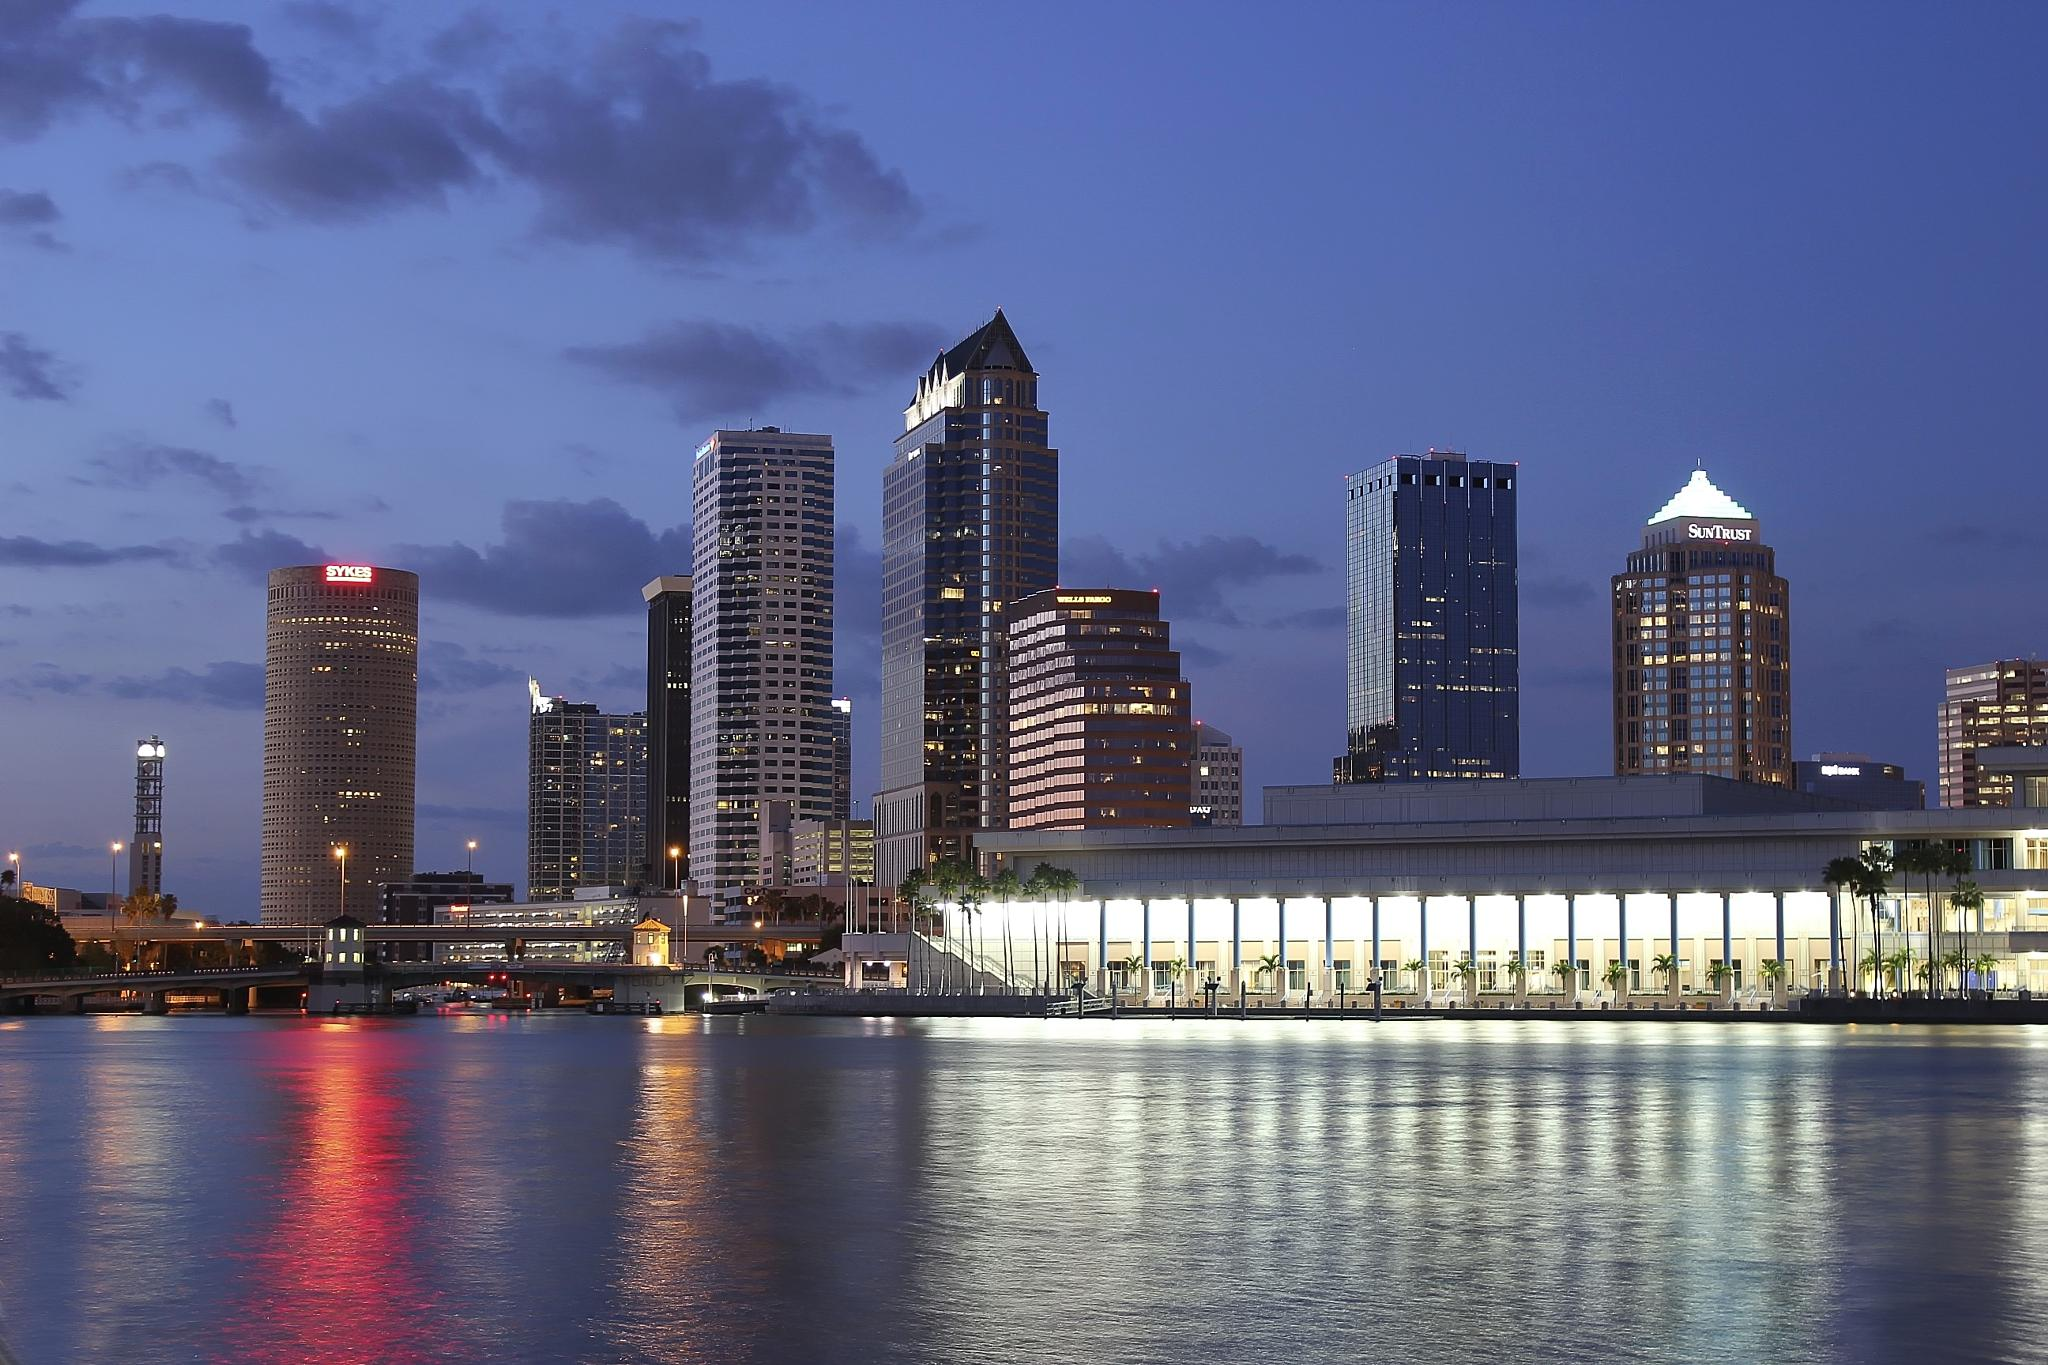 Tampa Night Life by Dean Wiley